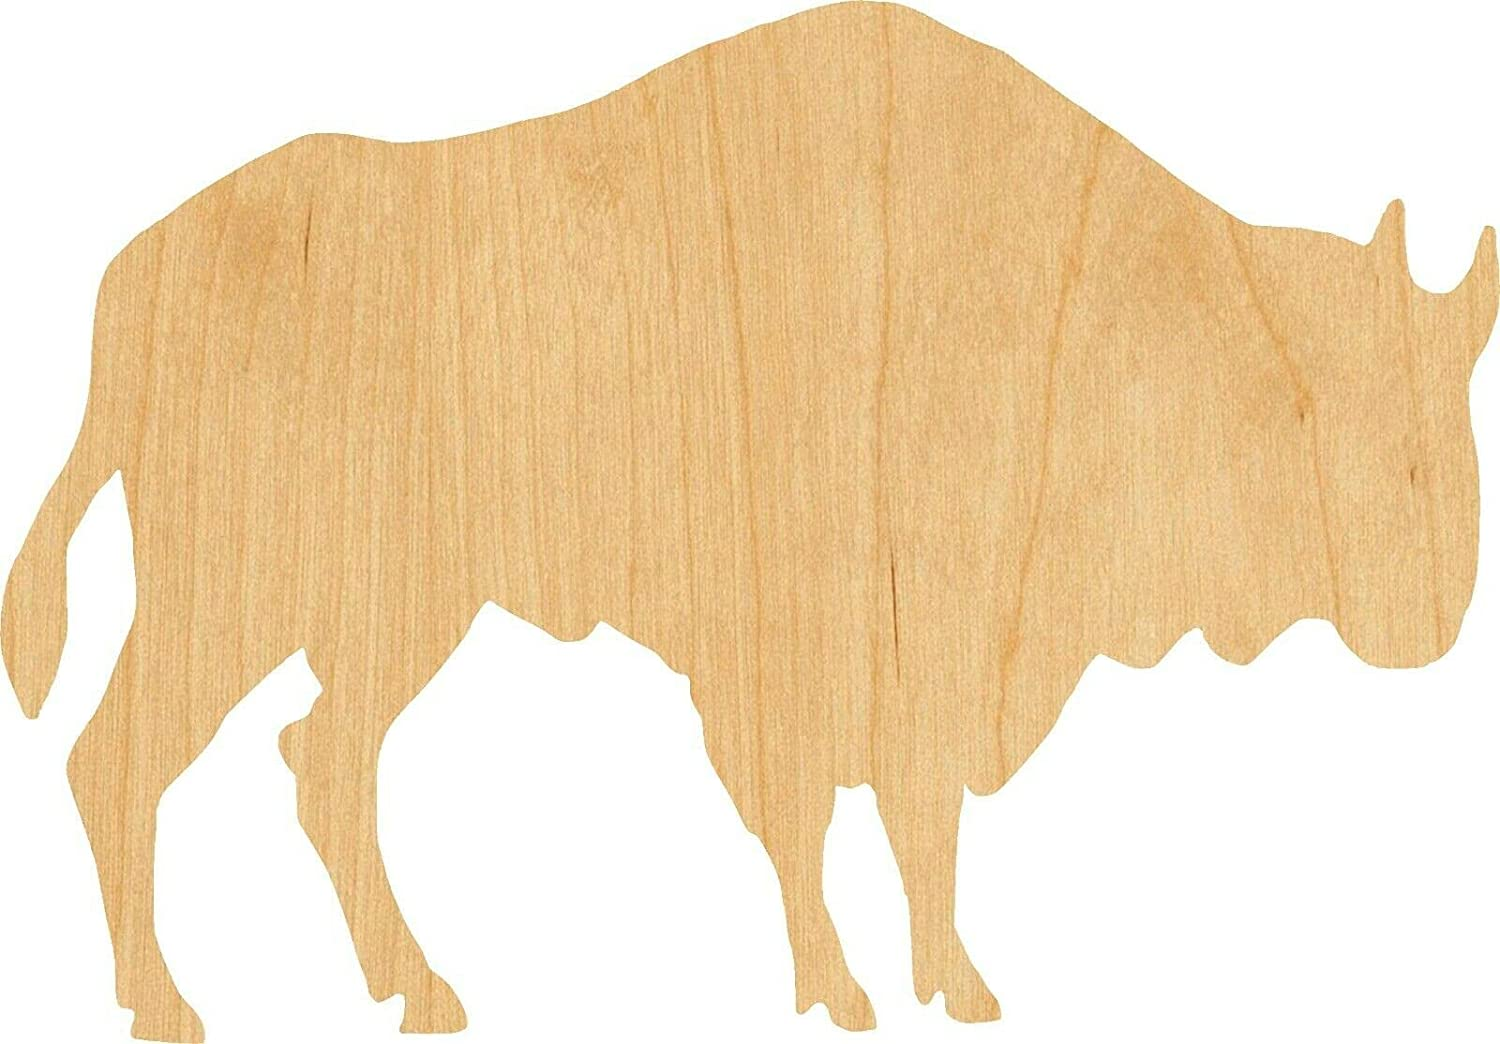 Buffalo Woodcraft Cutout Thickness: 1 Max 47% OFF Quanti 7 Quantity limited Inch Size: 8